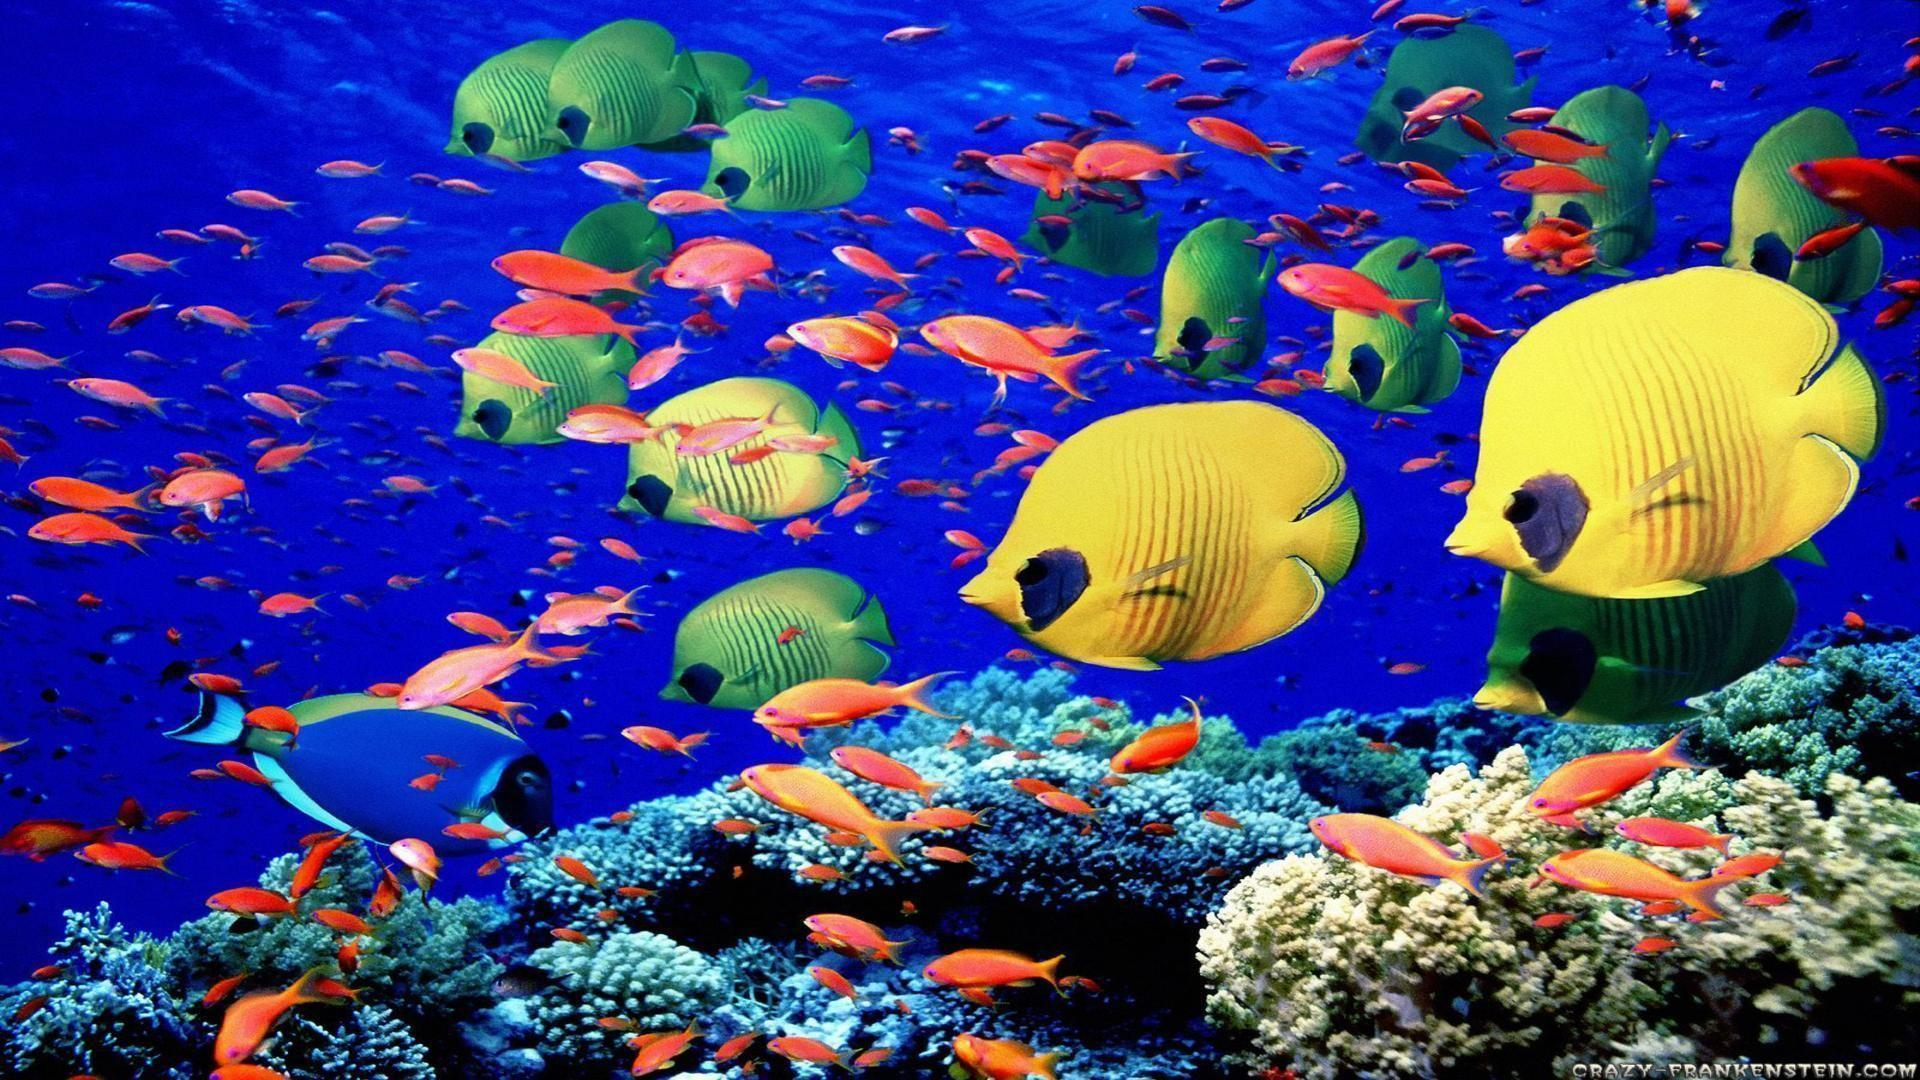 under the sea fish wallpapers - photo #30